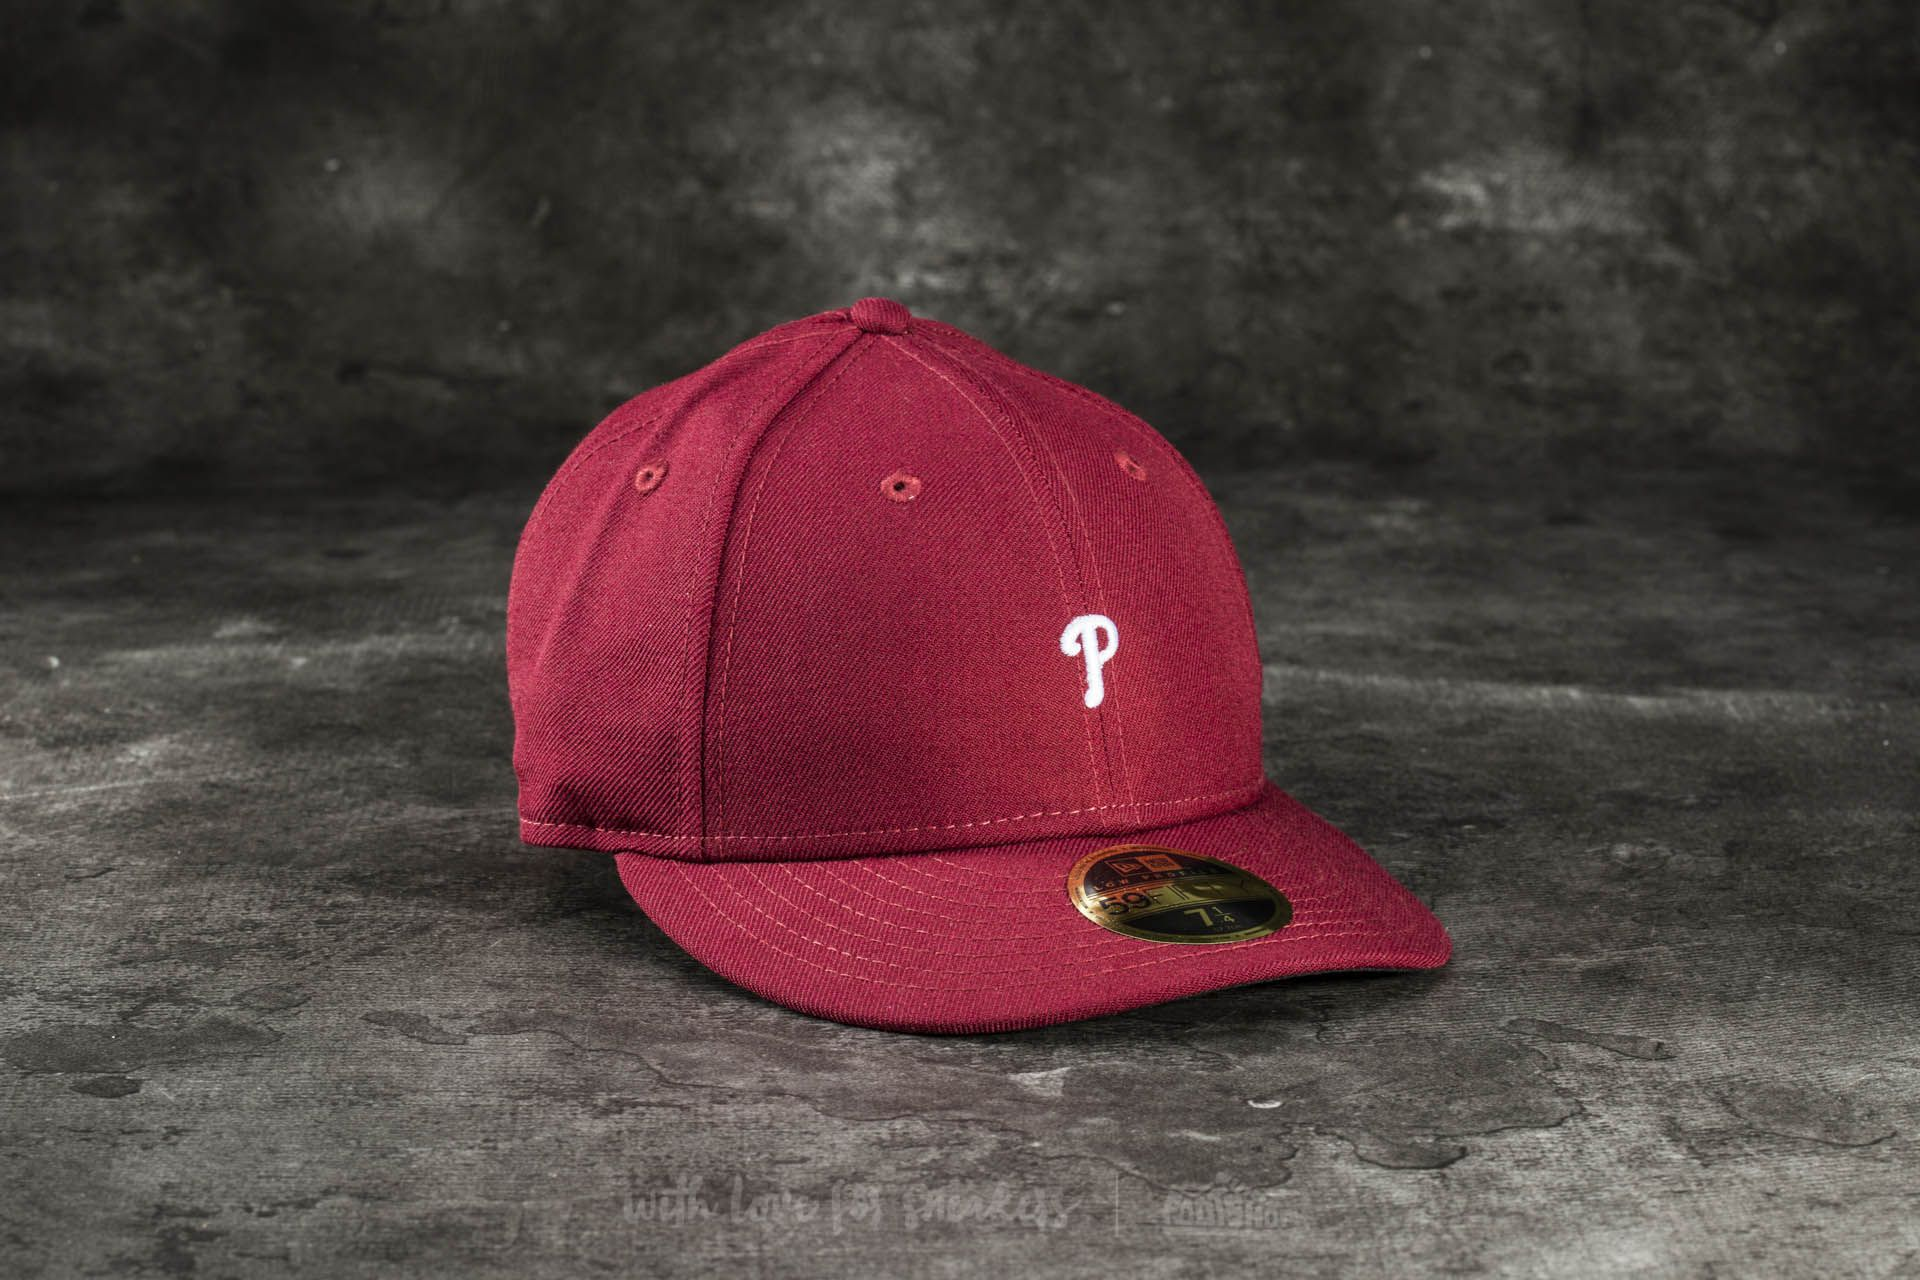 New Era 59Fifty Low Profile Mini Logo Philadelphia Phillies Cap Burgundy 83b44ea5ba5